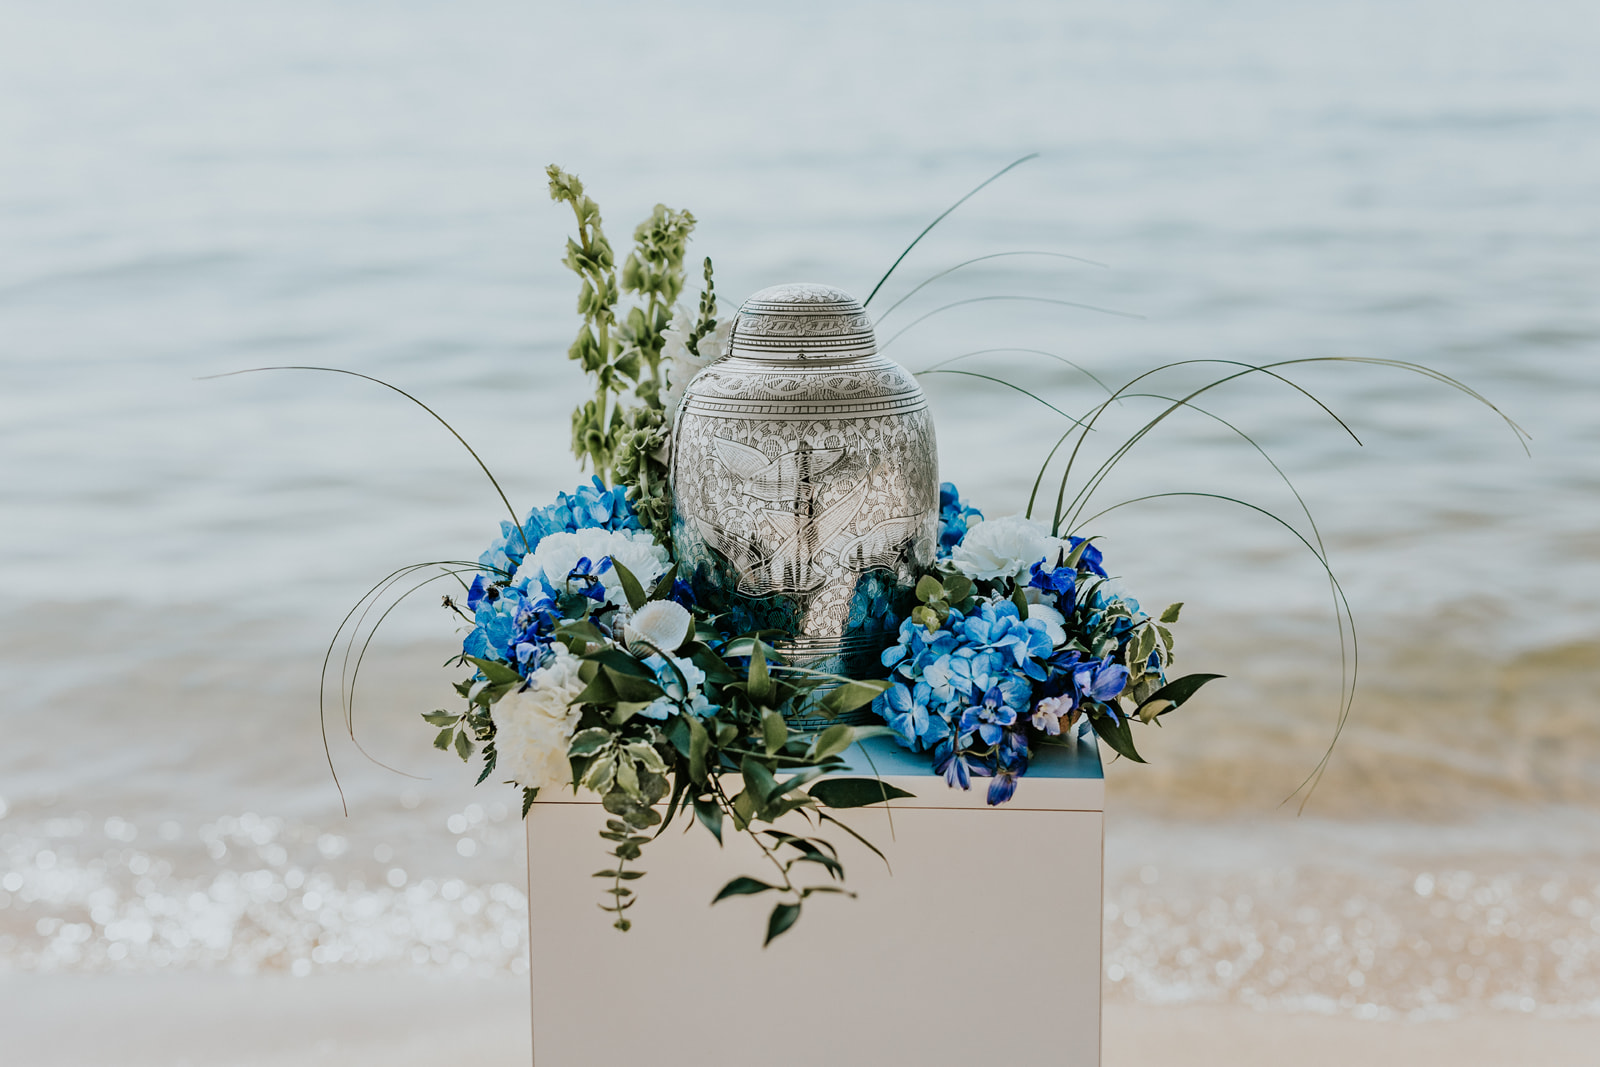 This stand-alone piece is inspired by the Lake Michigan shoreline. Capturing the blue of the water and the green of the dune grass, the memorial urn arrangement is designed using blue hydrangea and delphinium, bells-of-Ireland, ruscus, and bear grass. An accent of shells is added to emphasize the beachscape. Other floral pieces can be designed in this same theme.